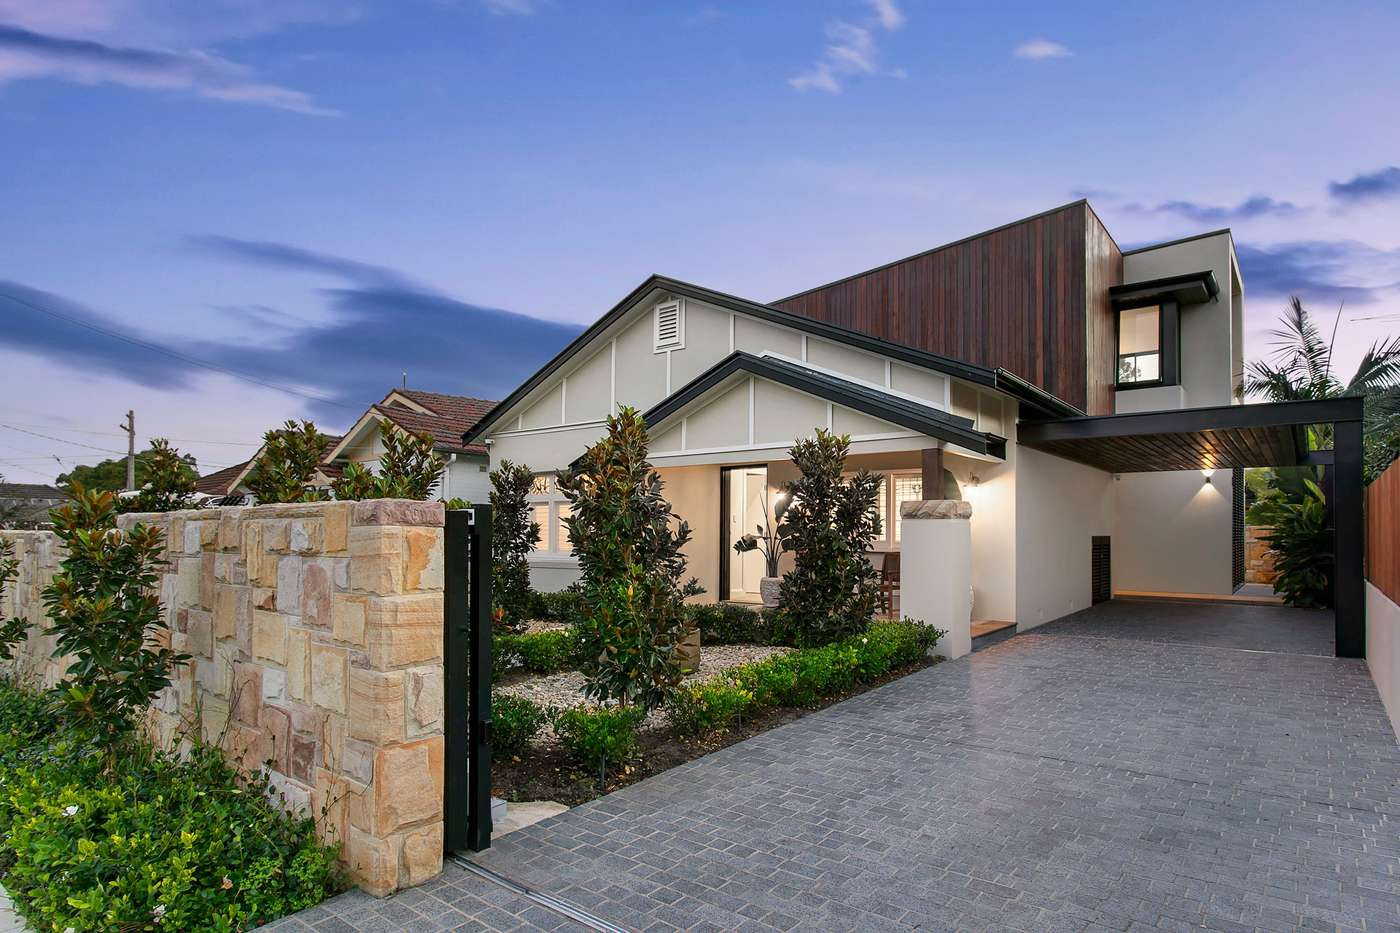 Main view of Homely house listing, 178 High Street, Willoughby, NSW 2068